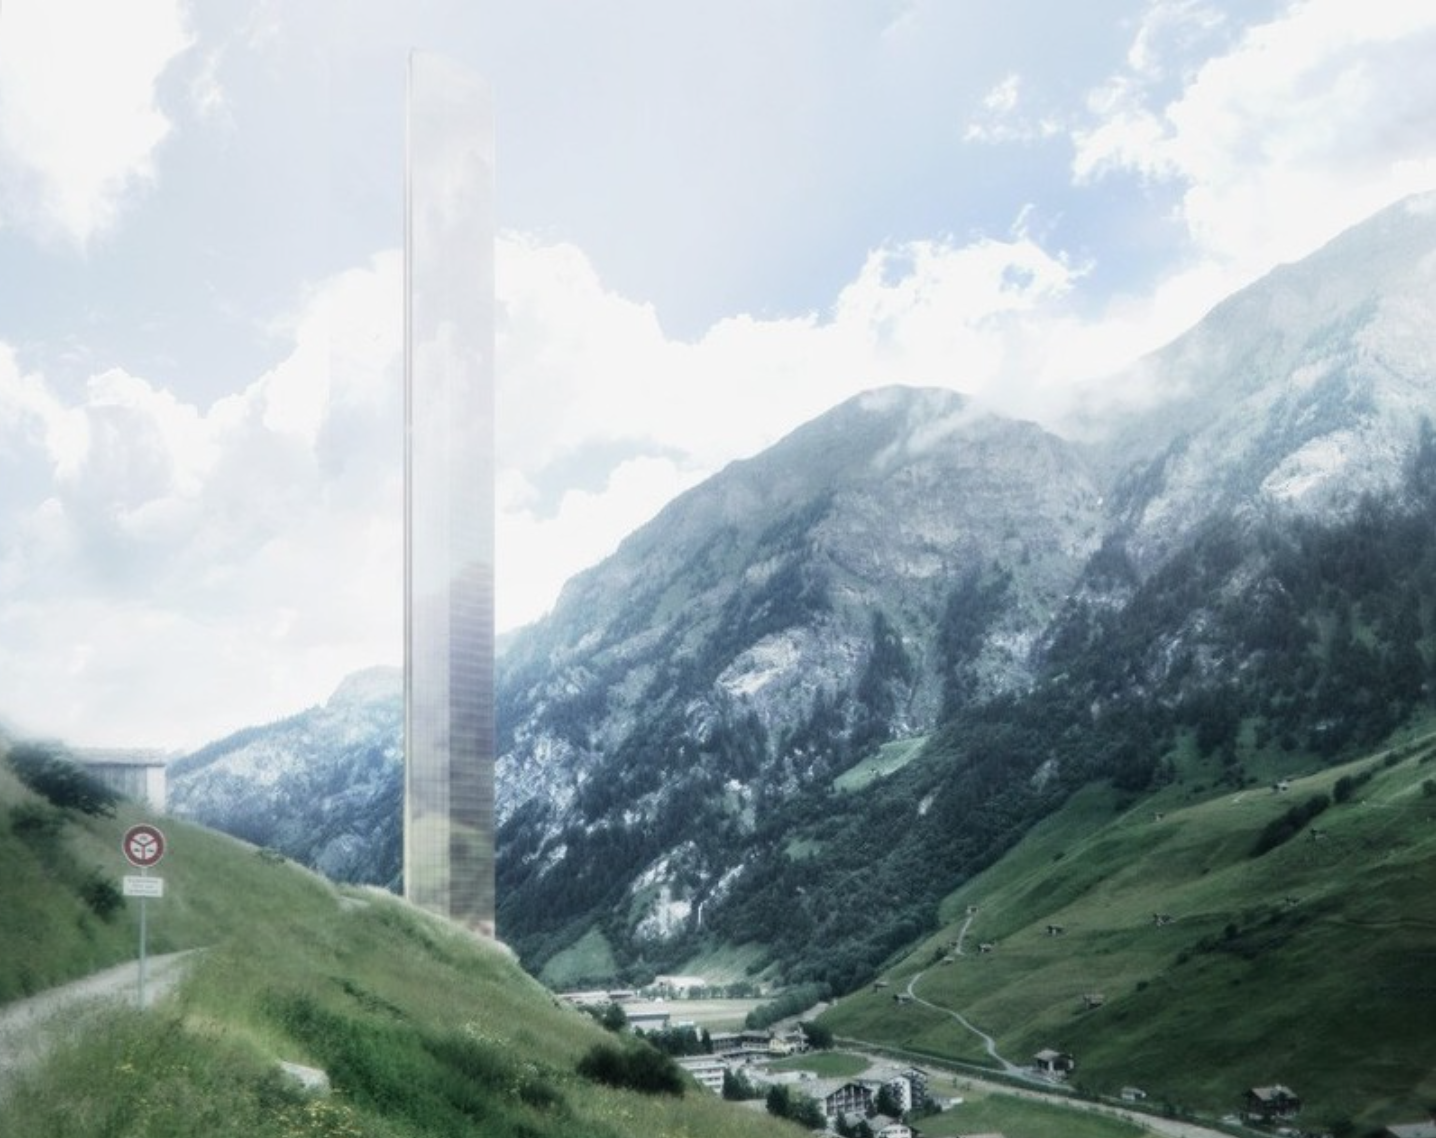 The 7132 Hotel is a controversial 1,250-foot resort skyscraper that dominates the surrounding Swiss Alps village of Vals, and obstructs some mountain views.